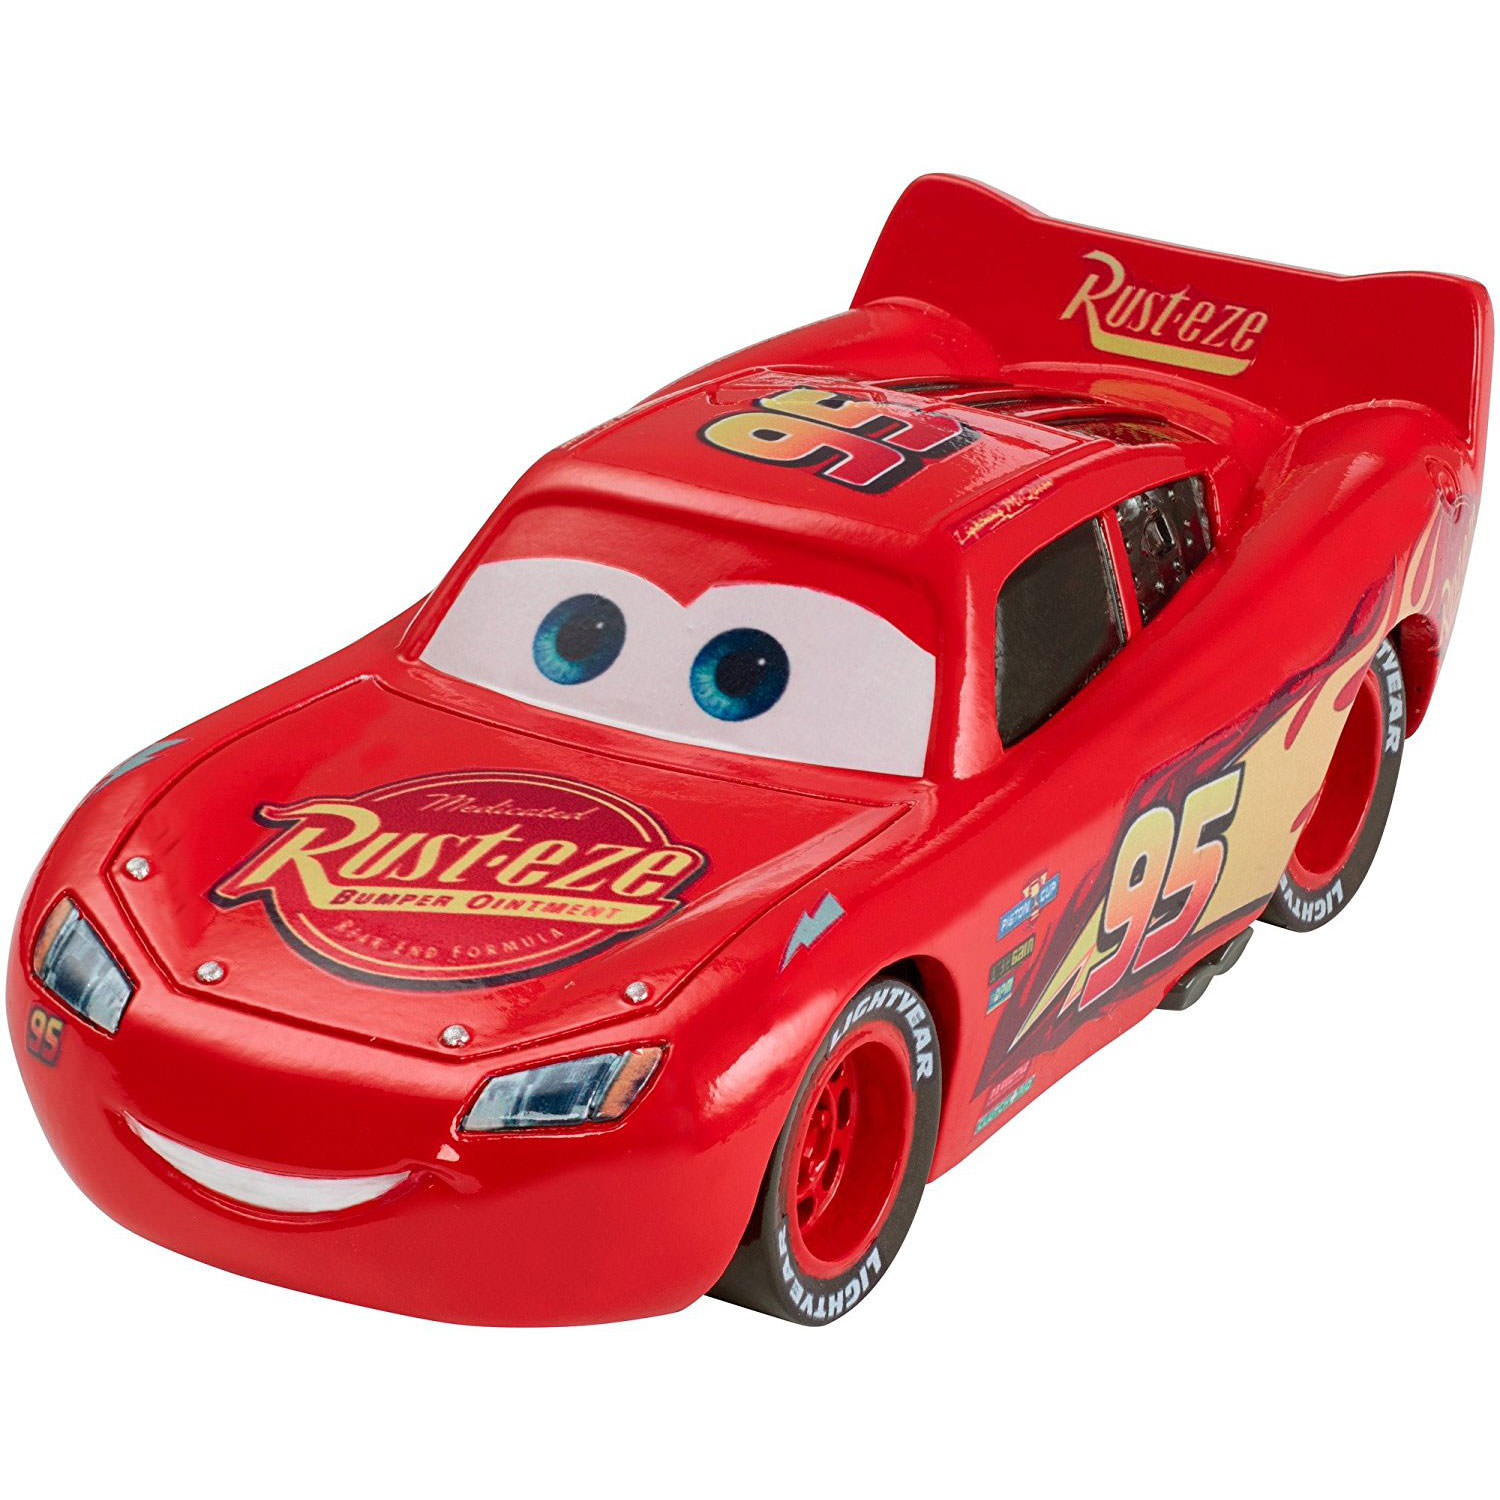 Pixar Cars 3 1:55 Scale Diecast Character